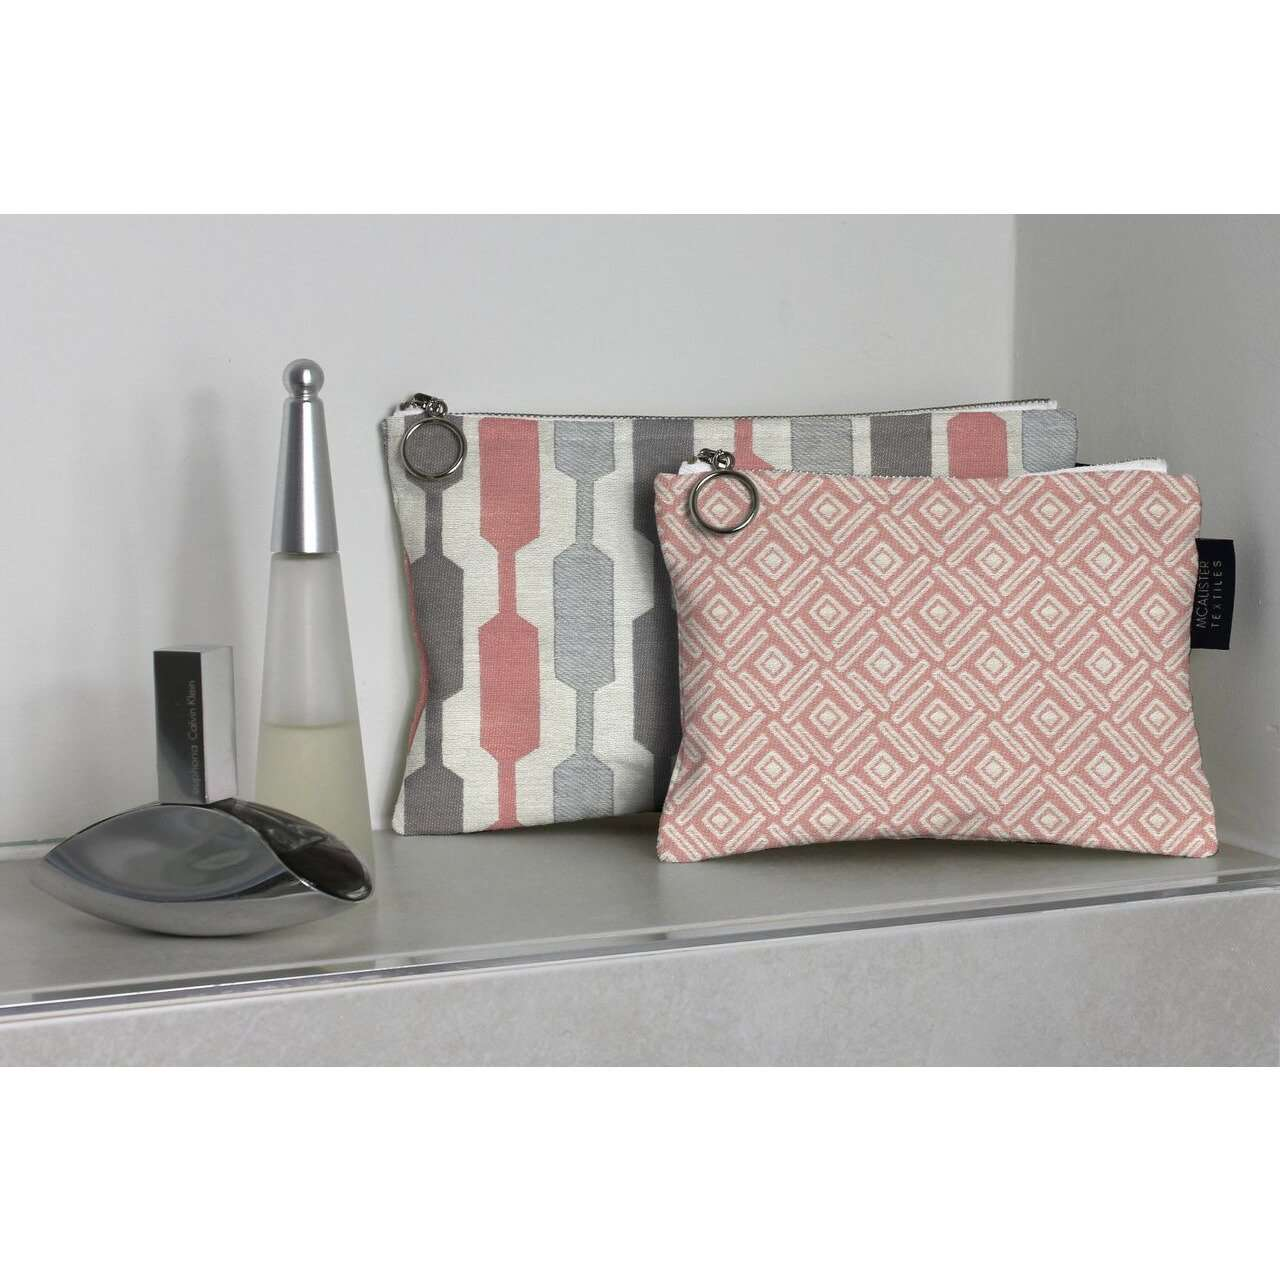 McAlister Textiles Elva Pink + Grey Makeup Bag Set Clutch Bag